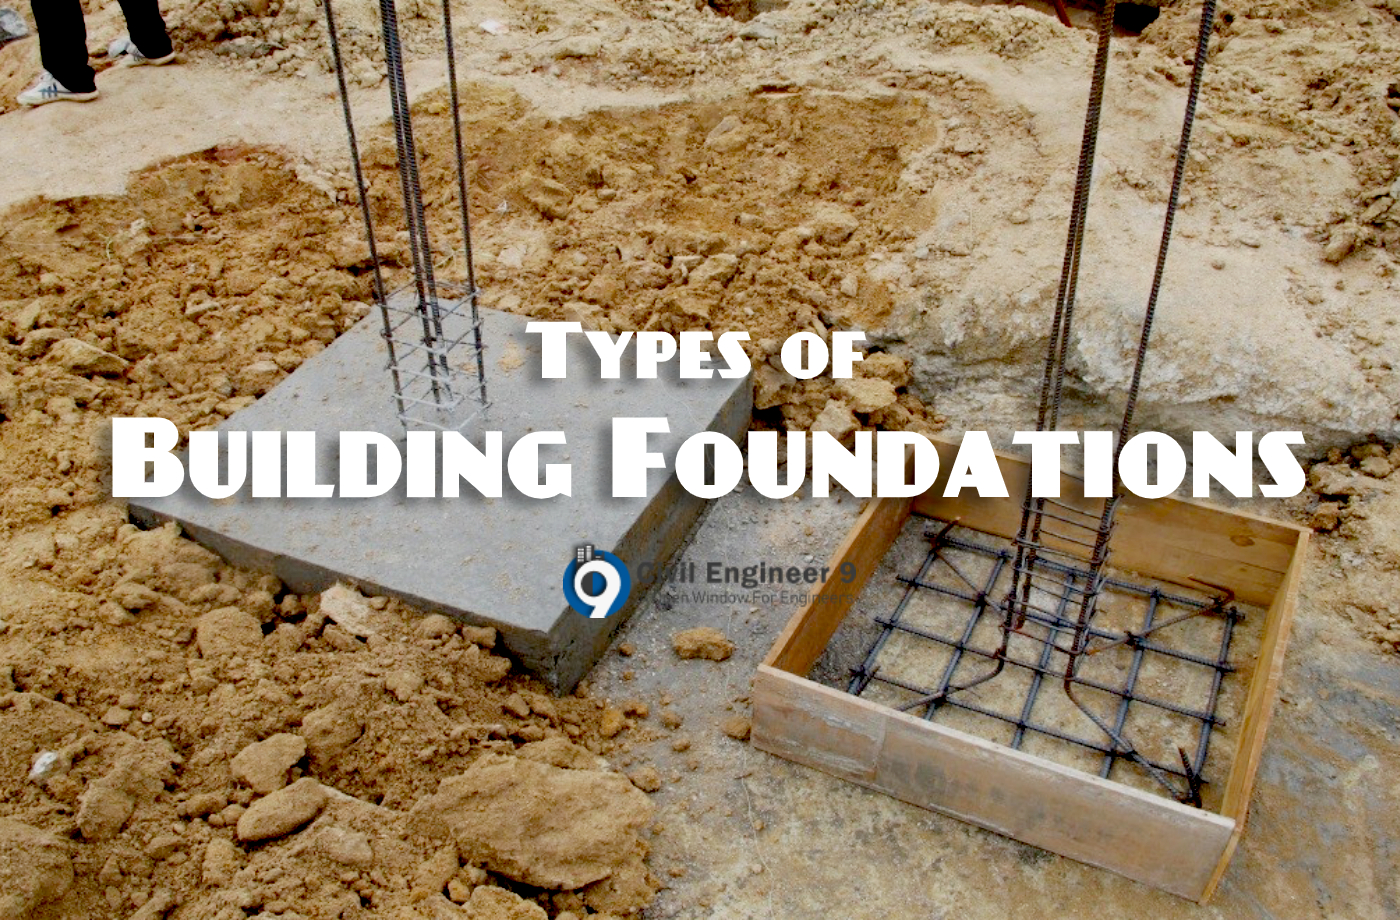 Types of Building Foundations